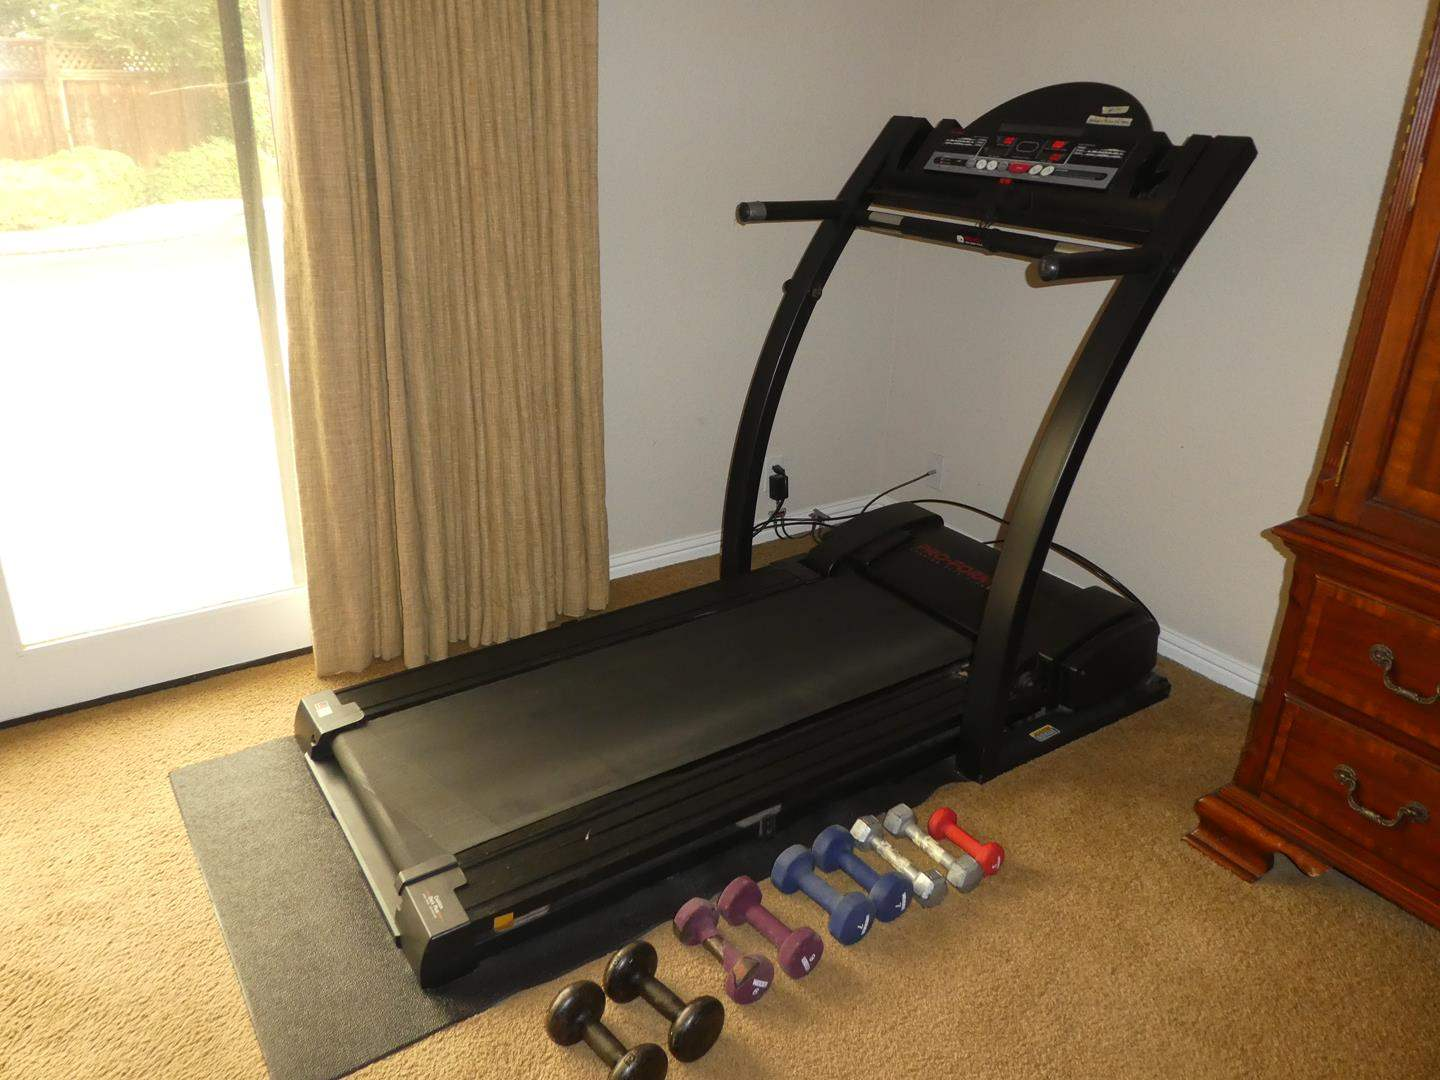 Lot # 74 - Pro-Form J8 Space Saver Cushion Deck Plus Treadmill & Arm Weights (main image)